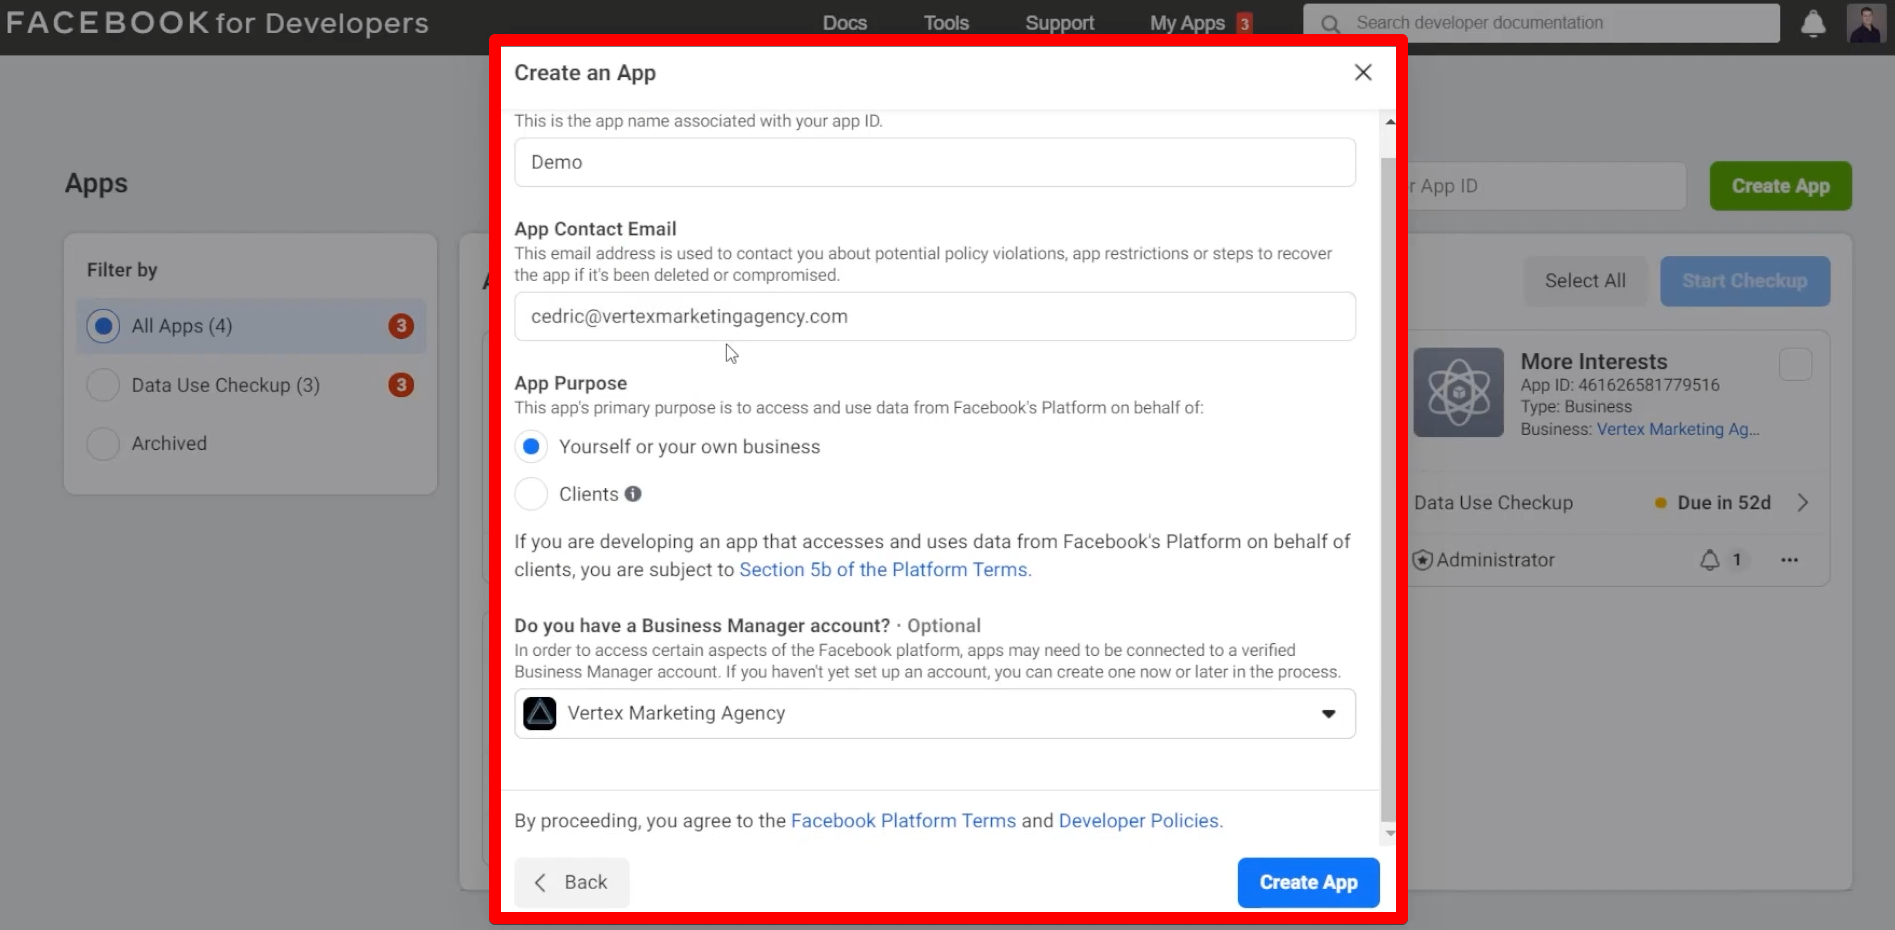 Filling out the information to create an app in Facebook Developer